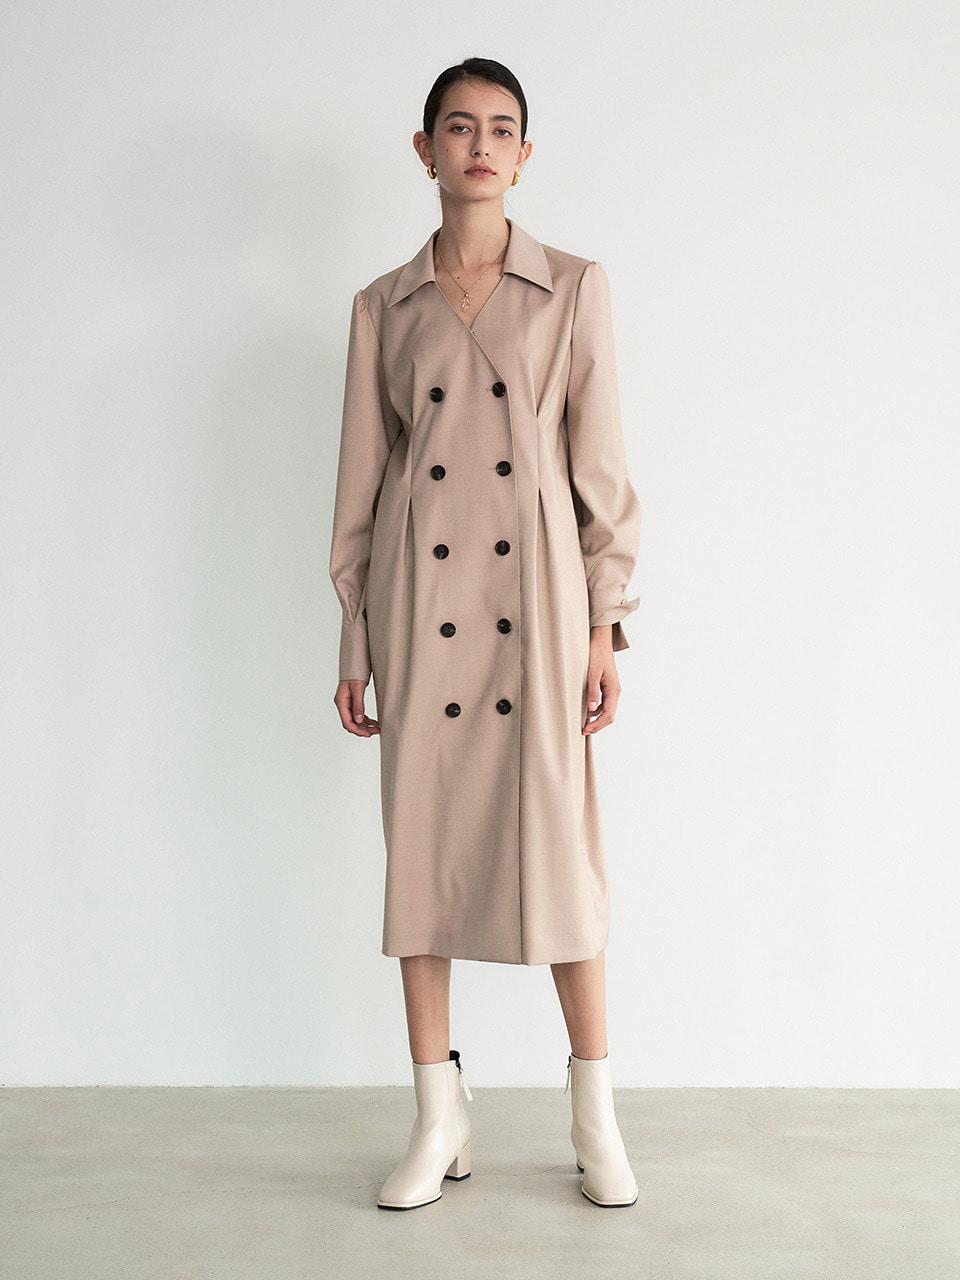 004 Double-breasted Jacket Dress (Brown)